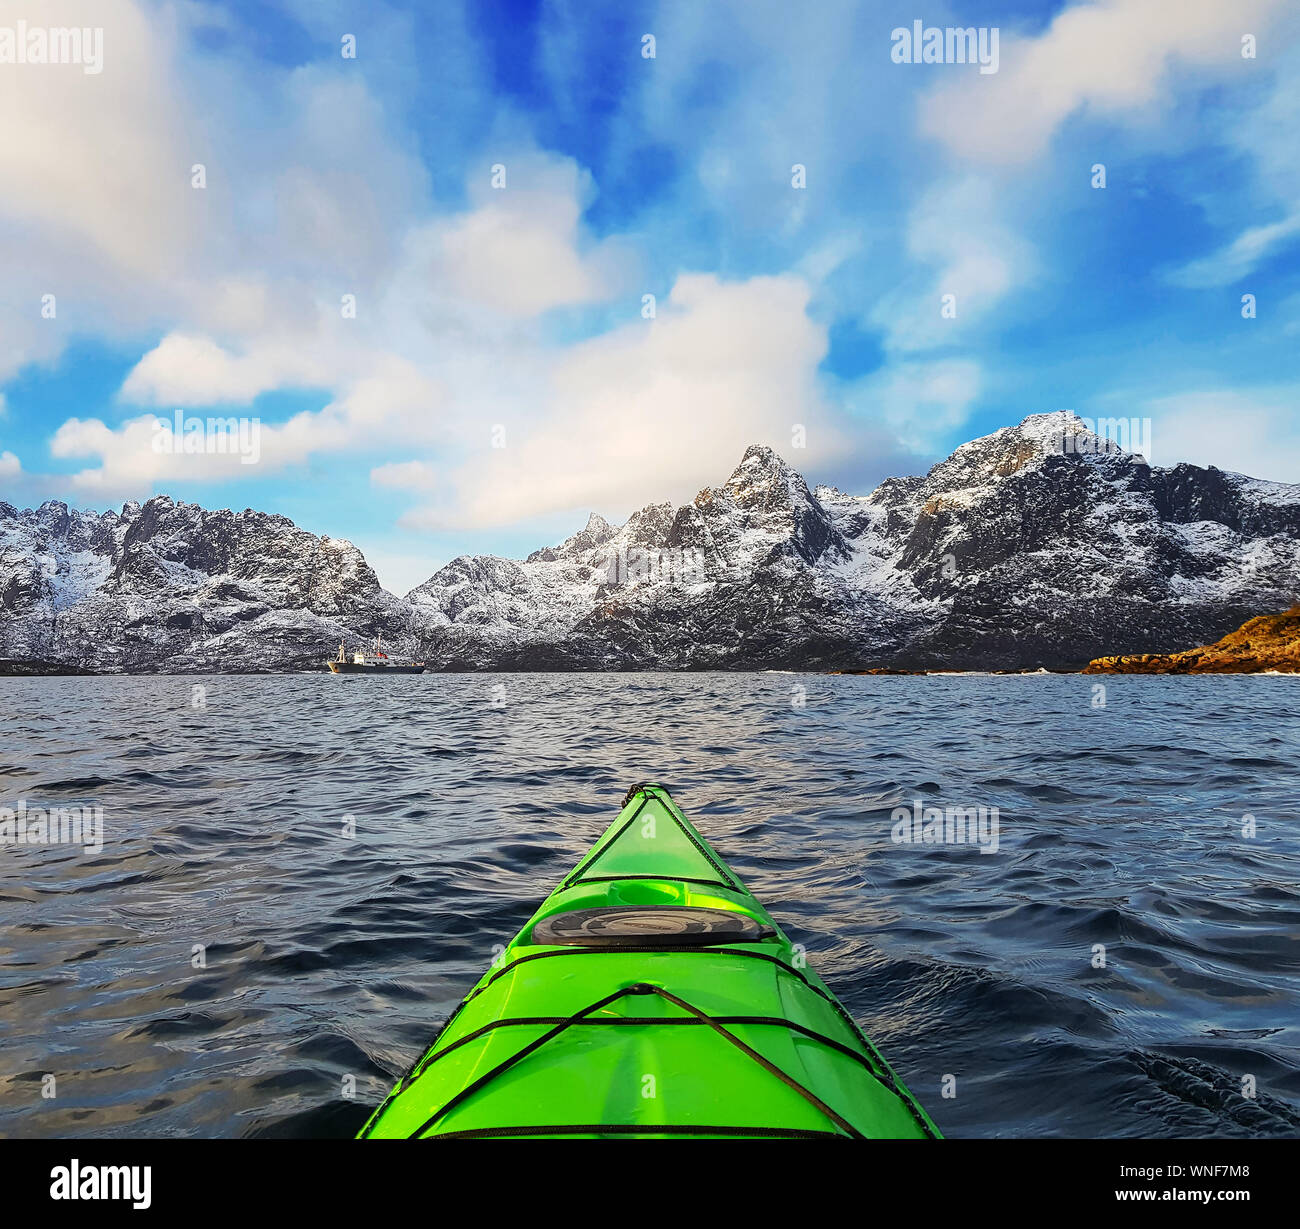 Small green kayak in bay fjord in the Lofoten Islands surrounded with snowy mountains and blue sky. Norway Stock Photo